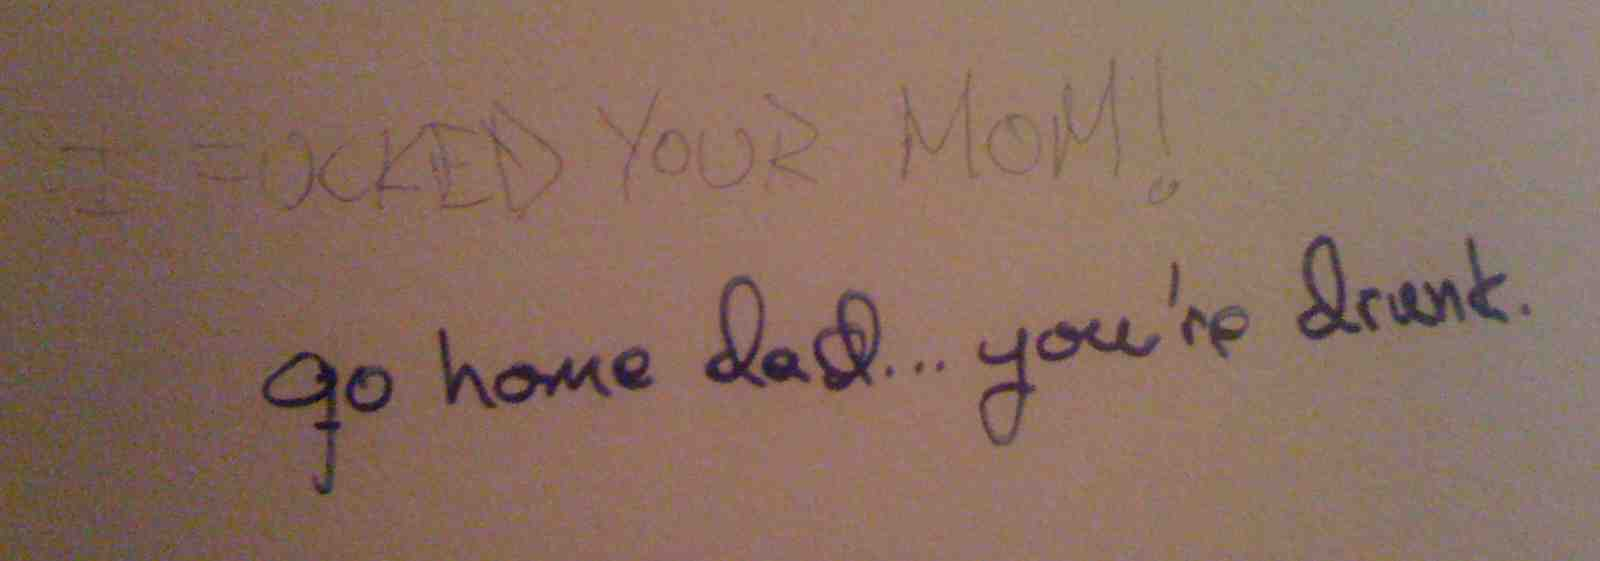 SF - Kezar Bar & Grill - A: I f'd your mom B: go home dad you're drunk